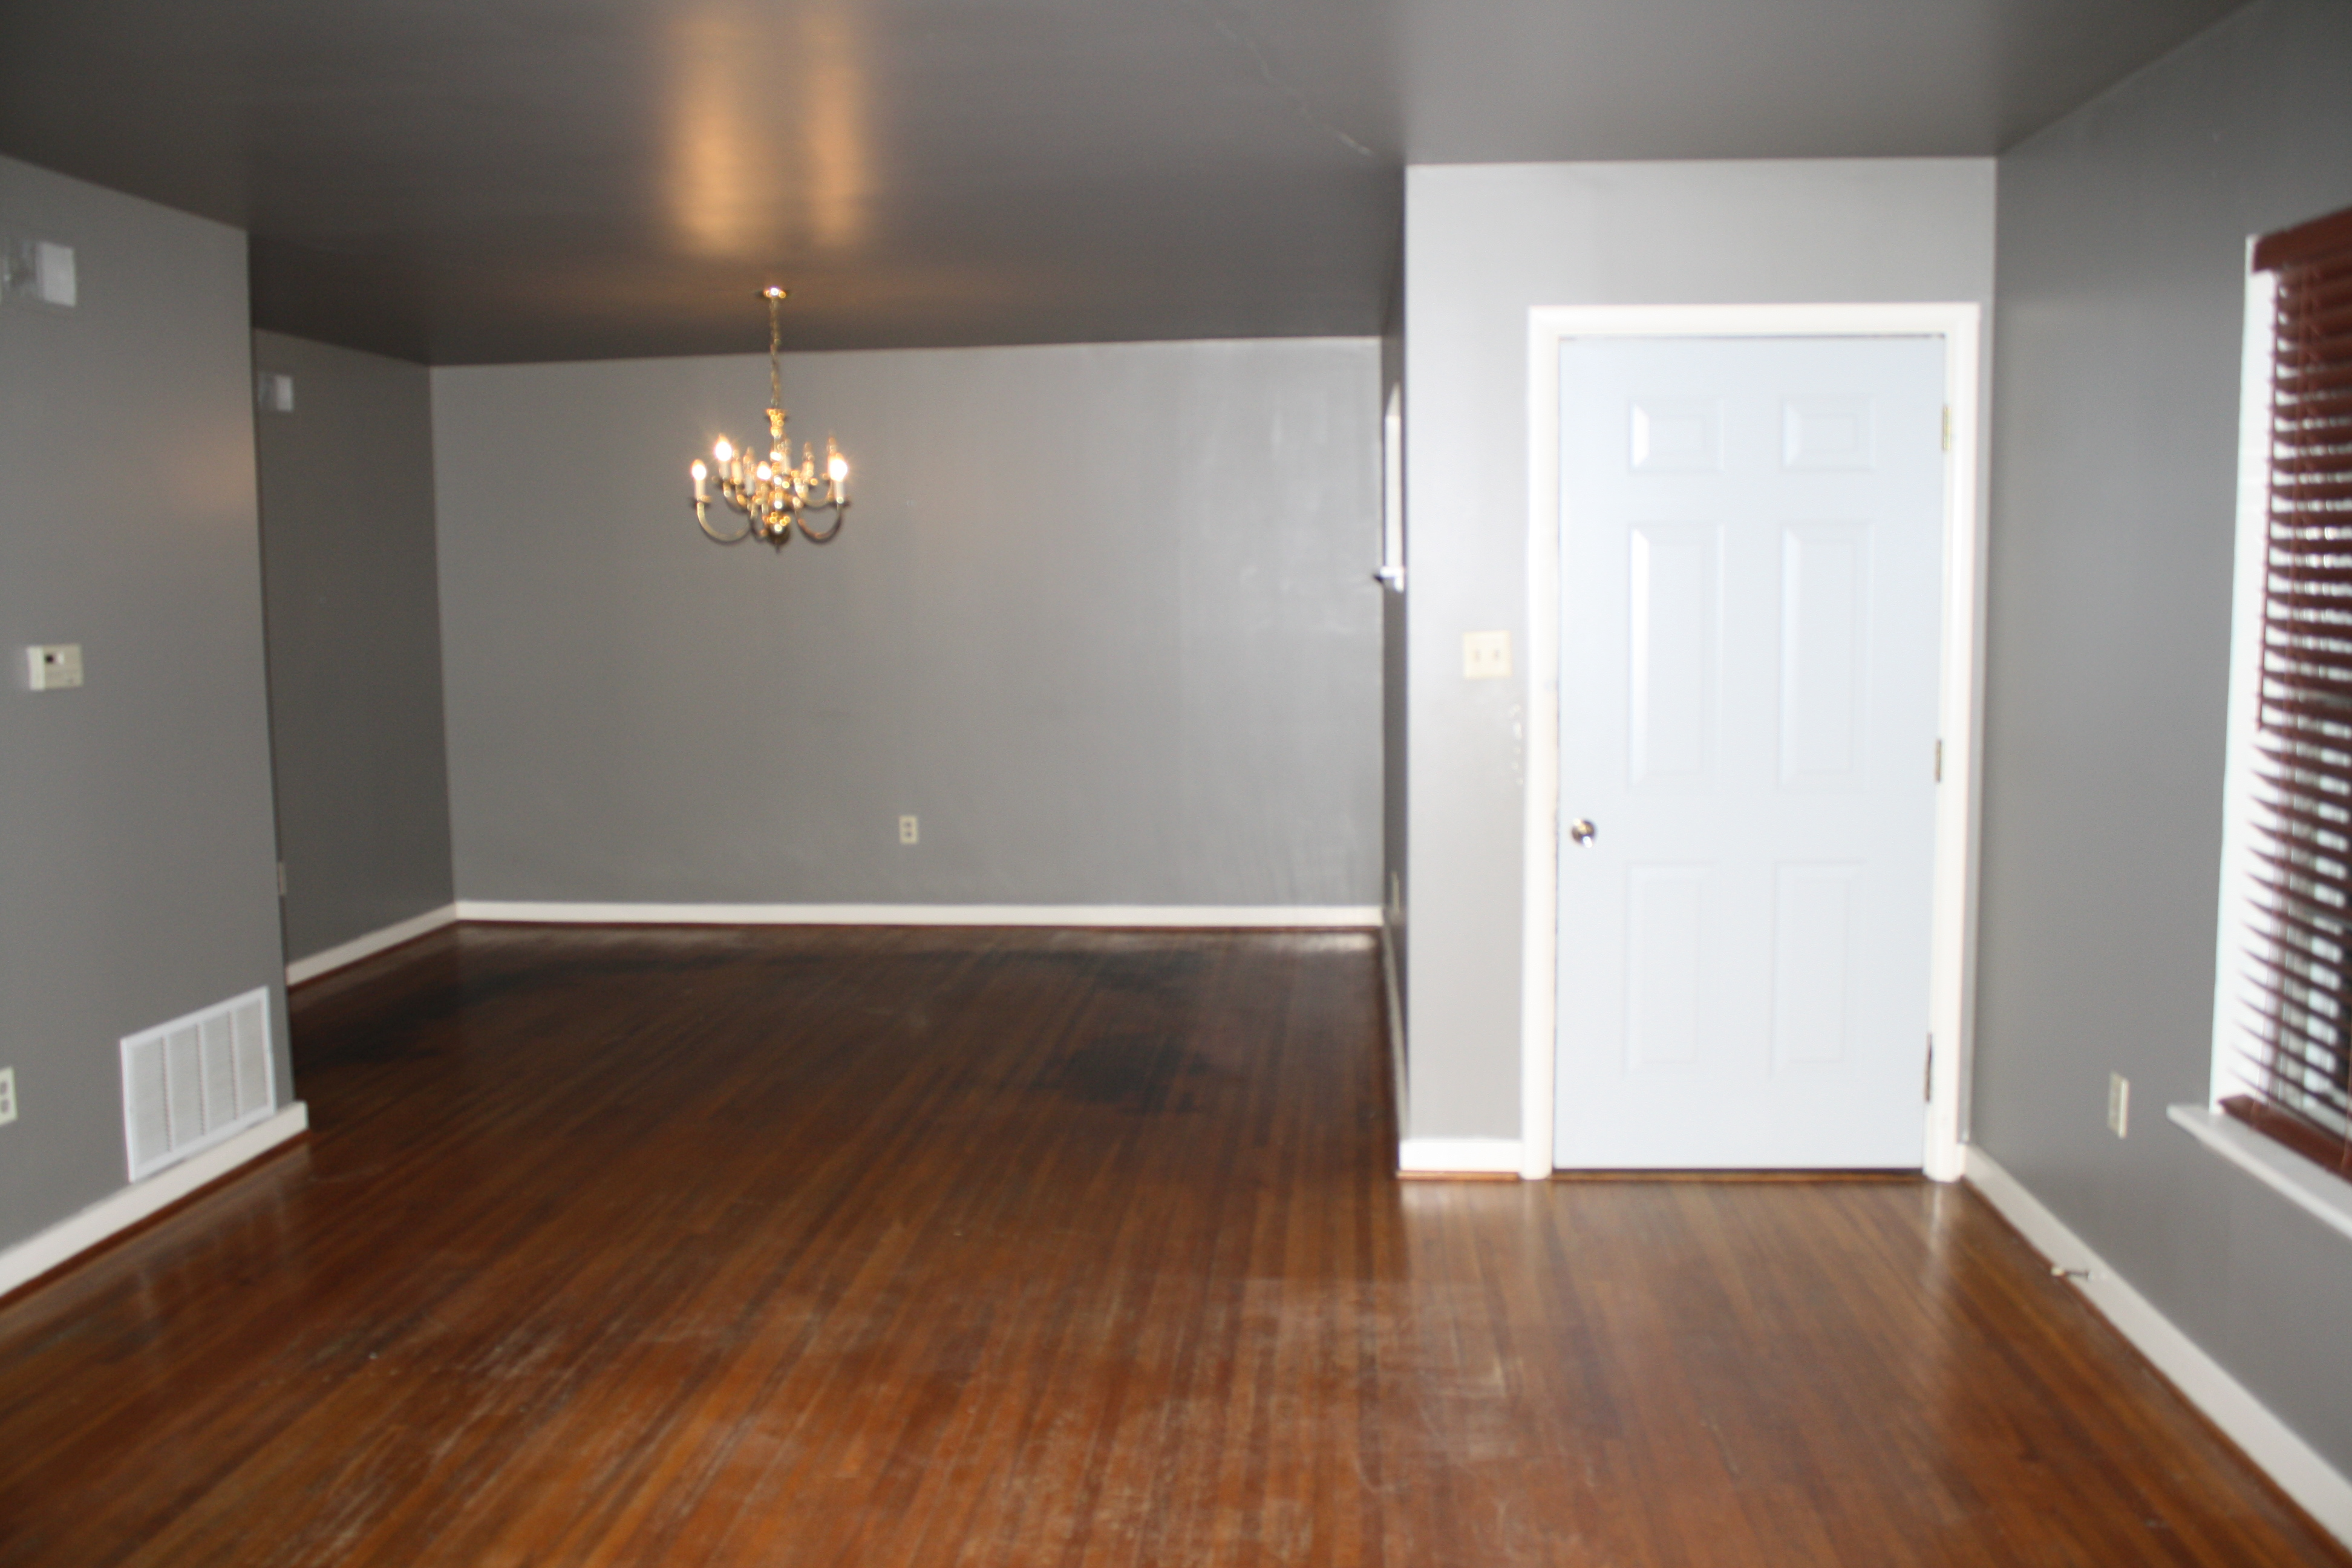 Big empty living room -  My Living Room Looks Empty Picture Ideas With Living Room Accessories